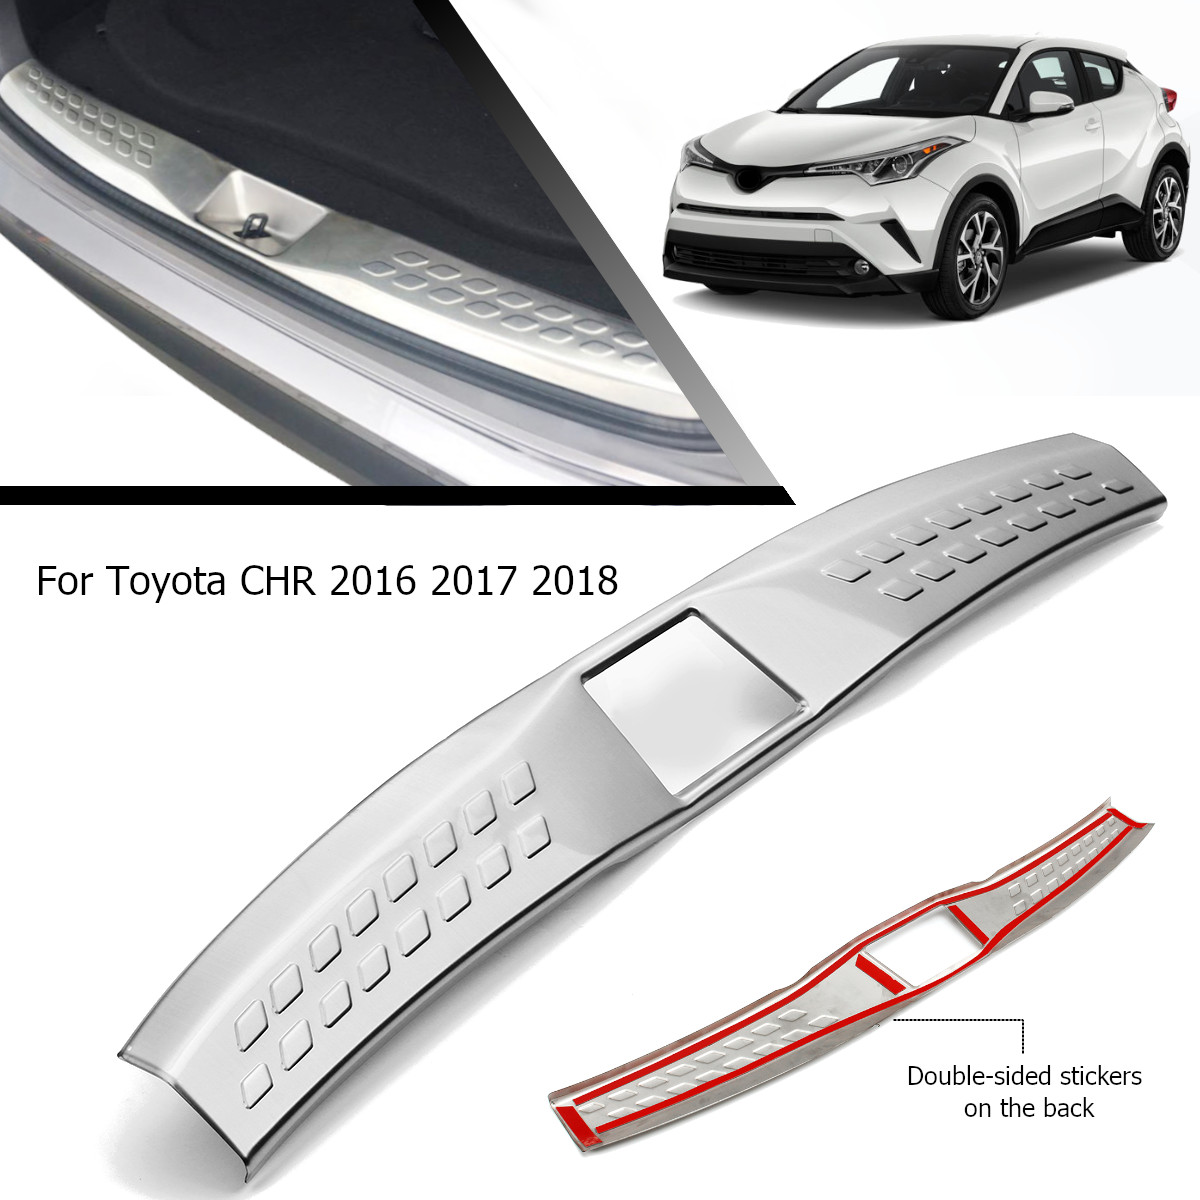 Rear Trunk Pad for Fender Stainless Steel Car Accessories For Toyota C HR CHR 2016 2017